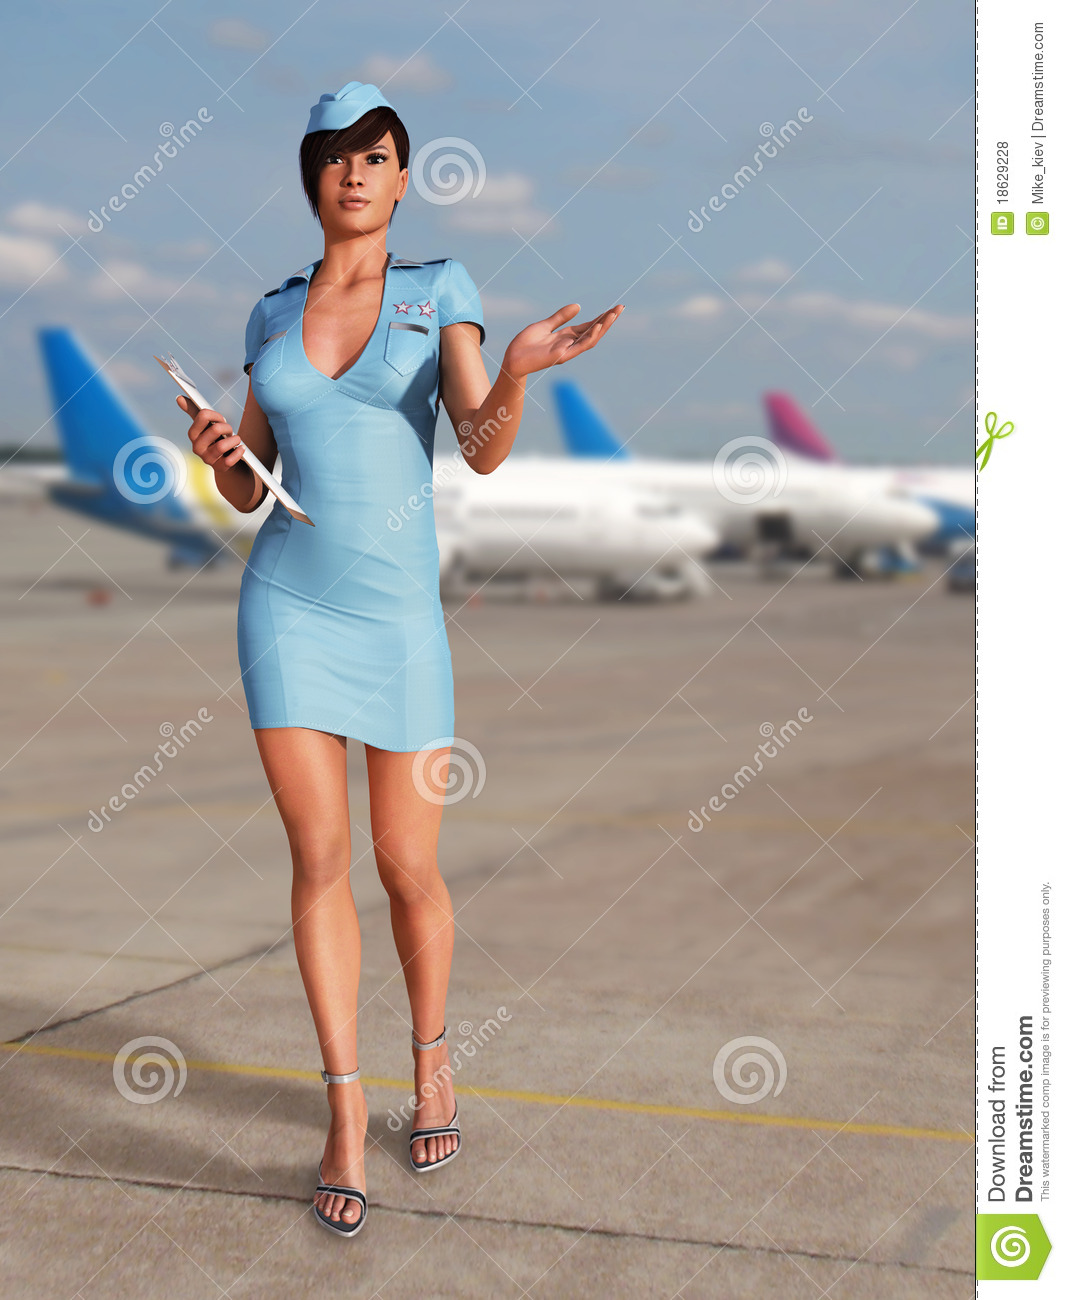 Stewardess porn photos free